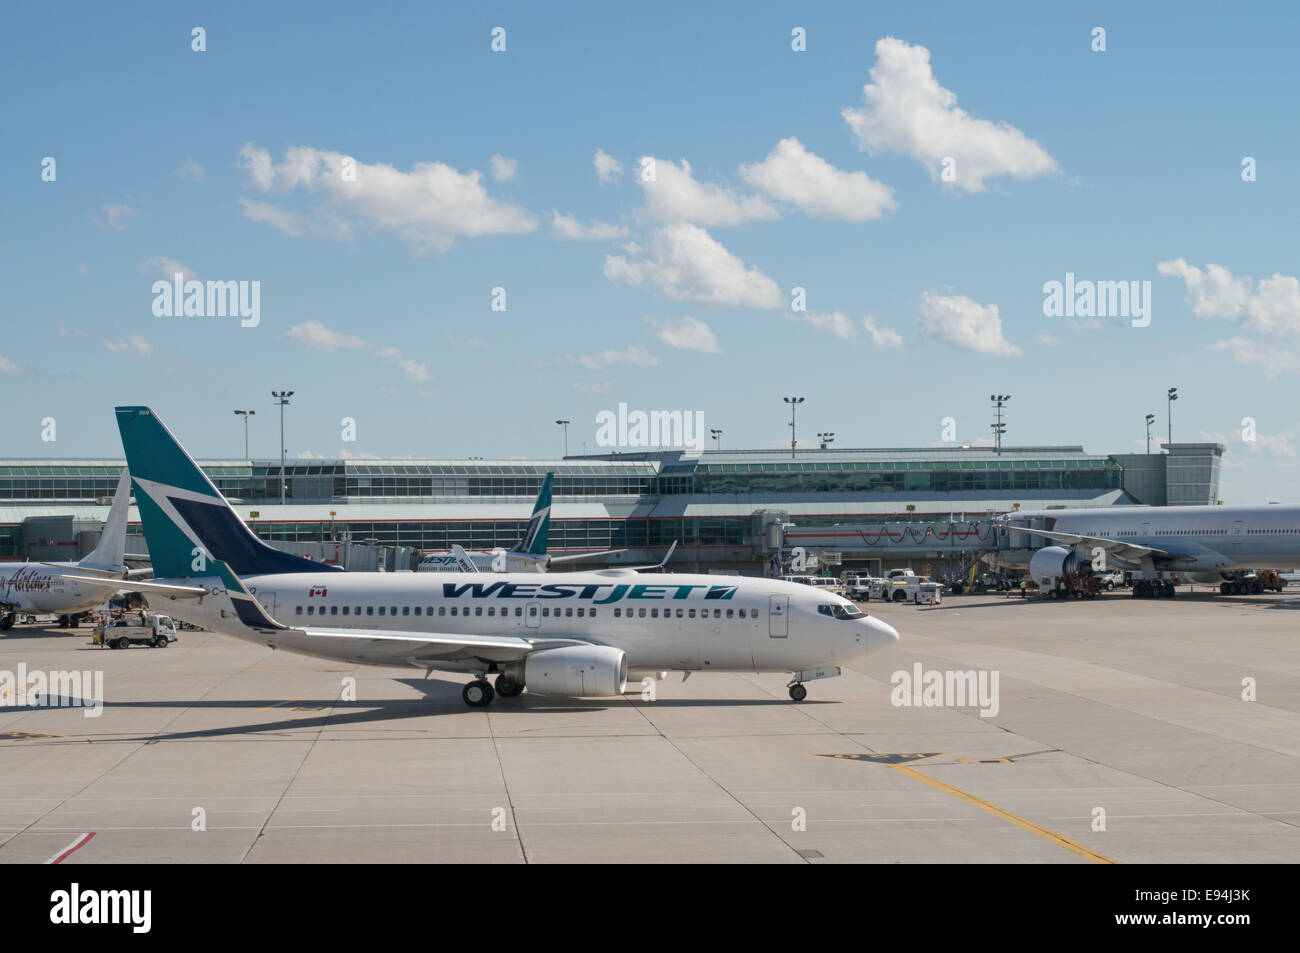 West Jet plane on the apron at Toronto Pearson International airport, Ontario, Canada - Stock Image